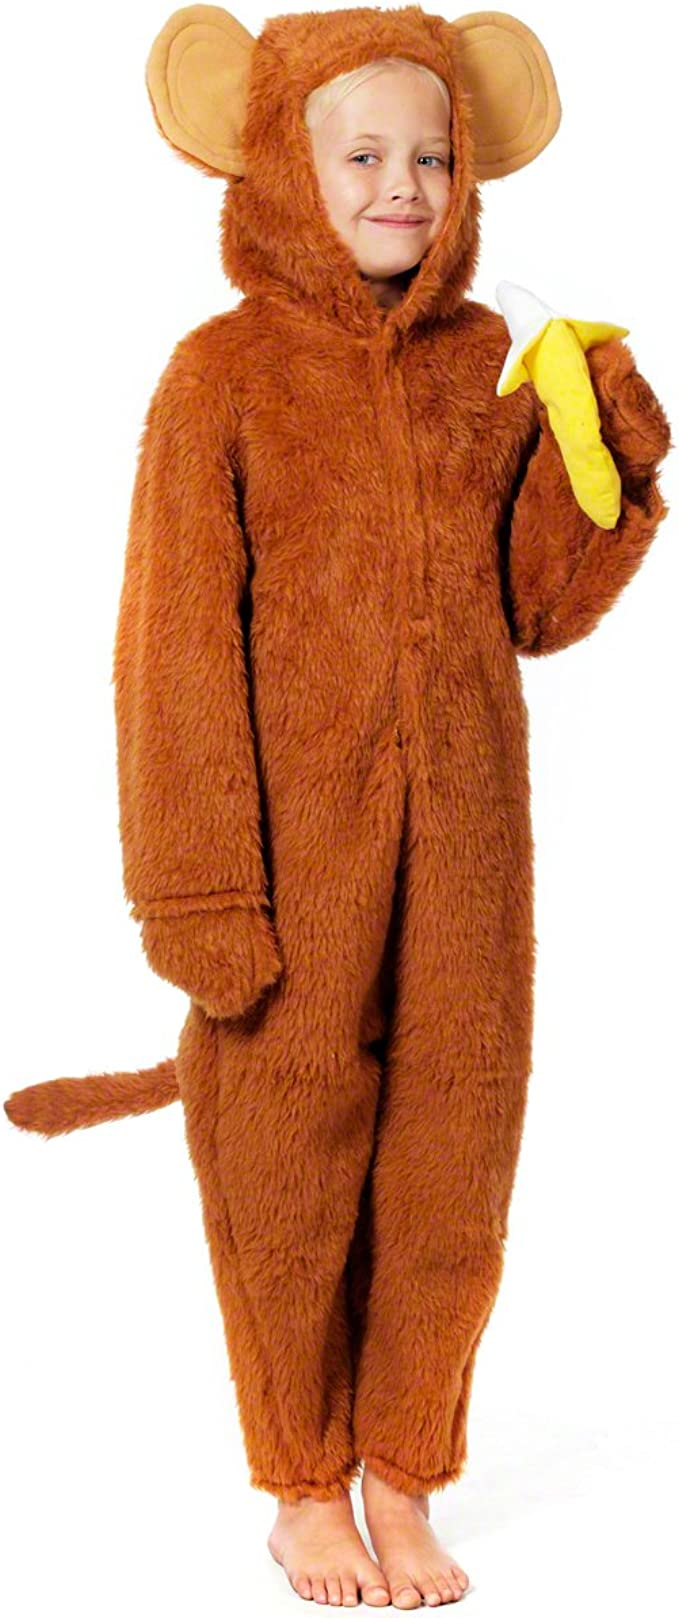 All in One with Hood - Tiger Costume COST-M NEW Size: Large Age 10-12 Brown